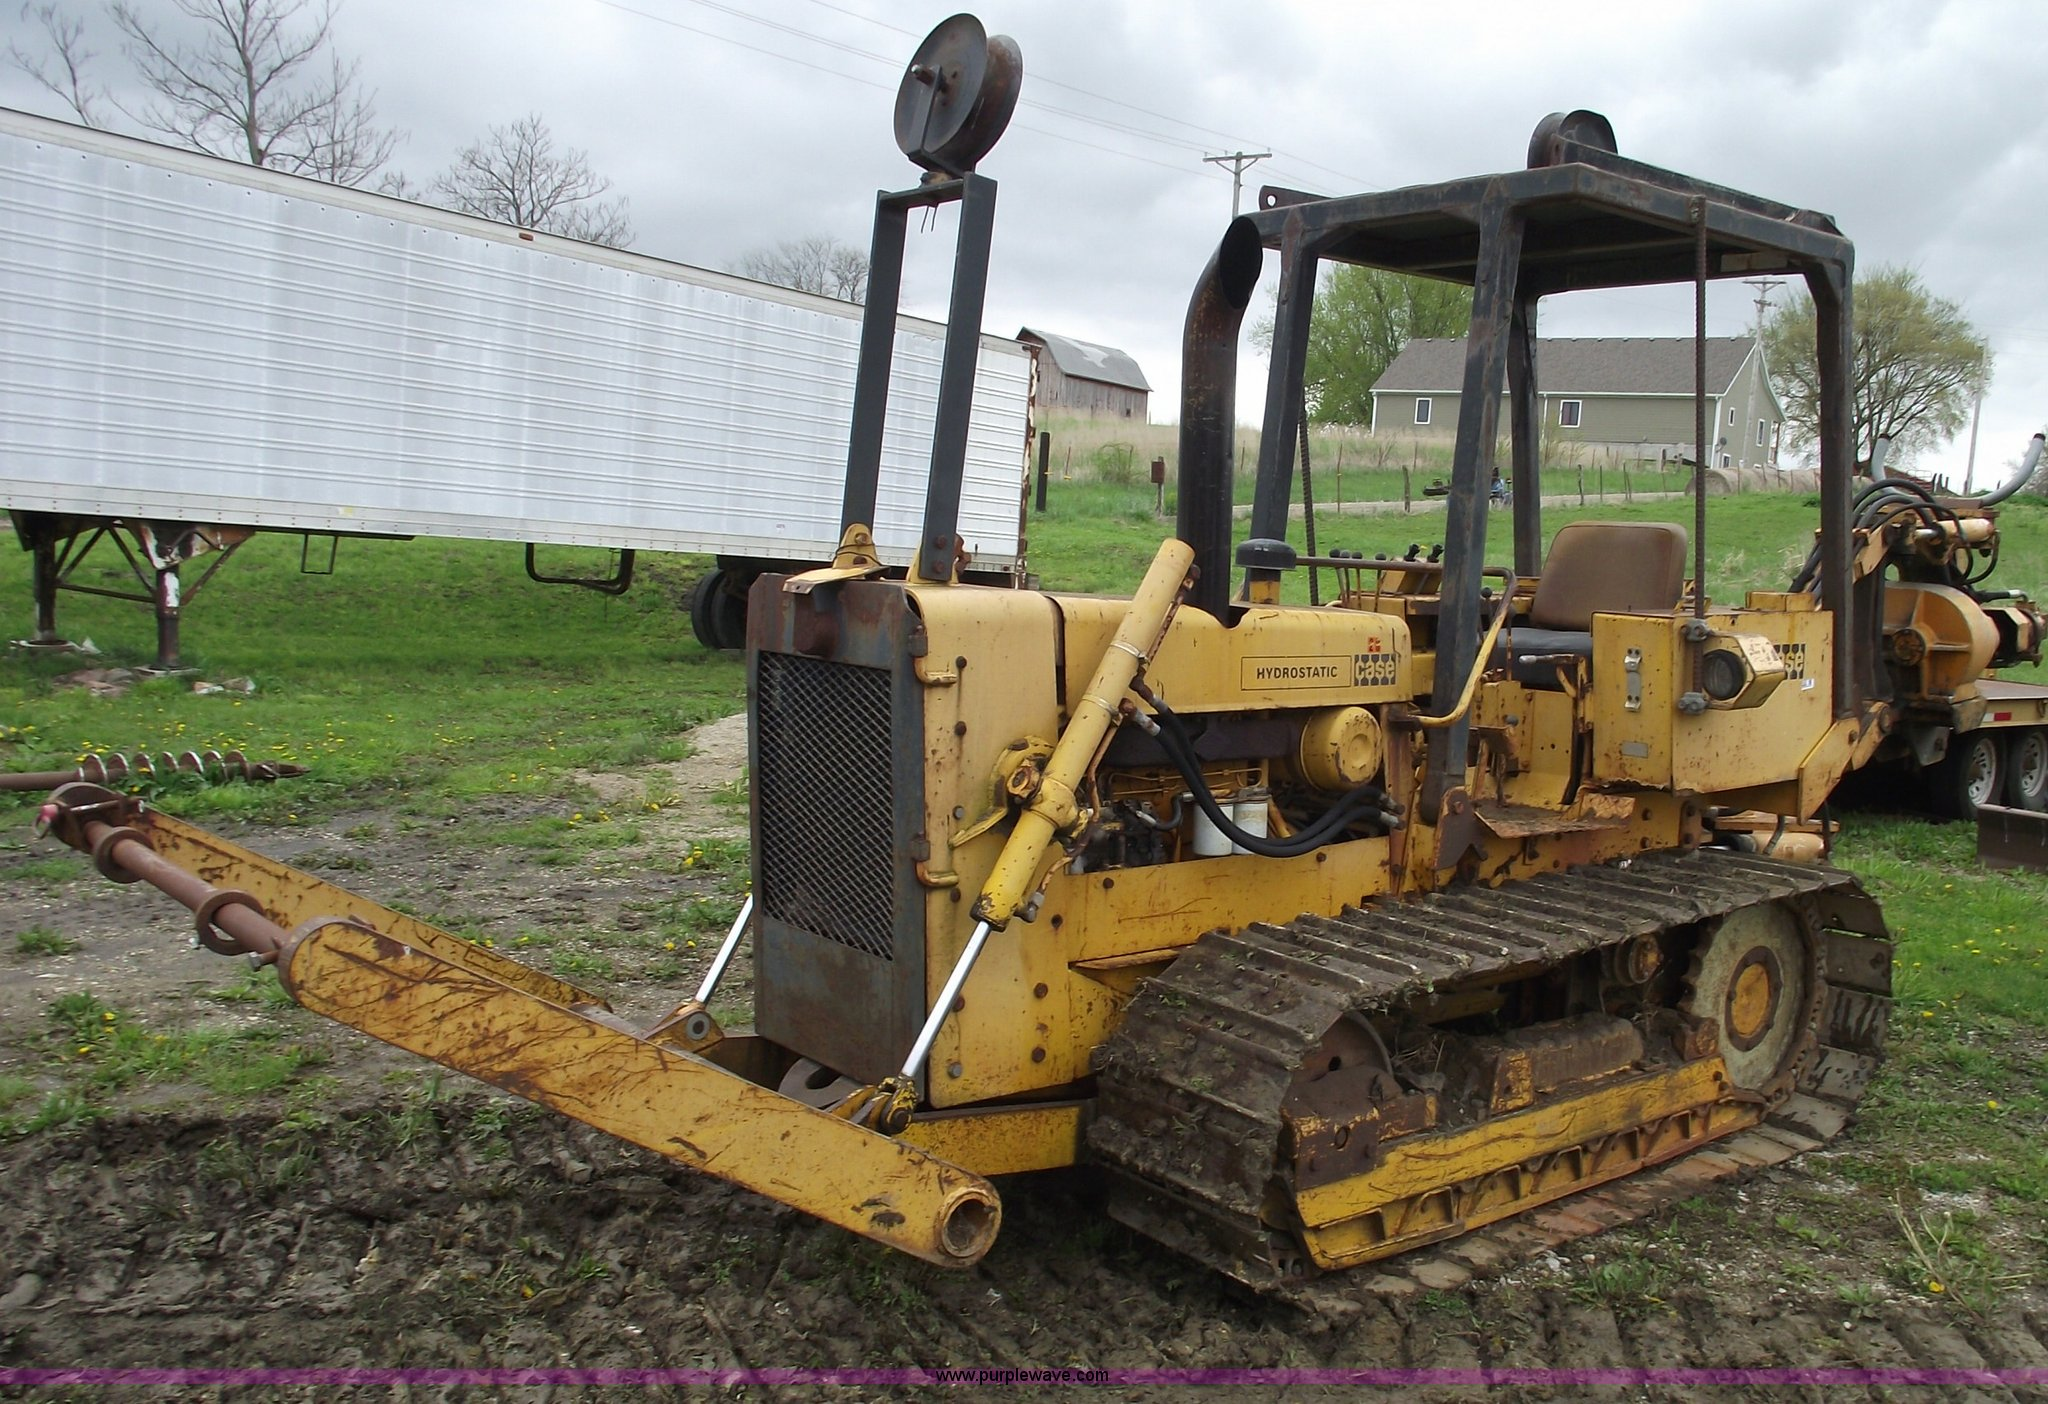 1975 Case 475 cable plow | Item 5435 | SOLD! May 26 Construc